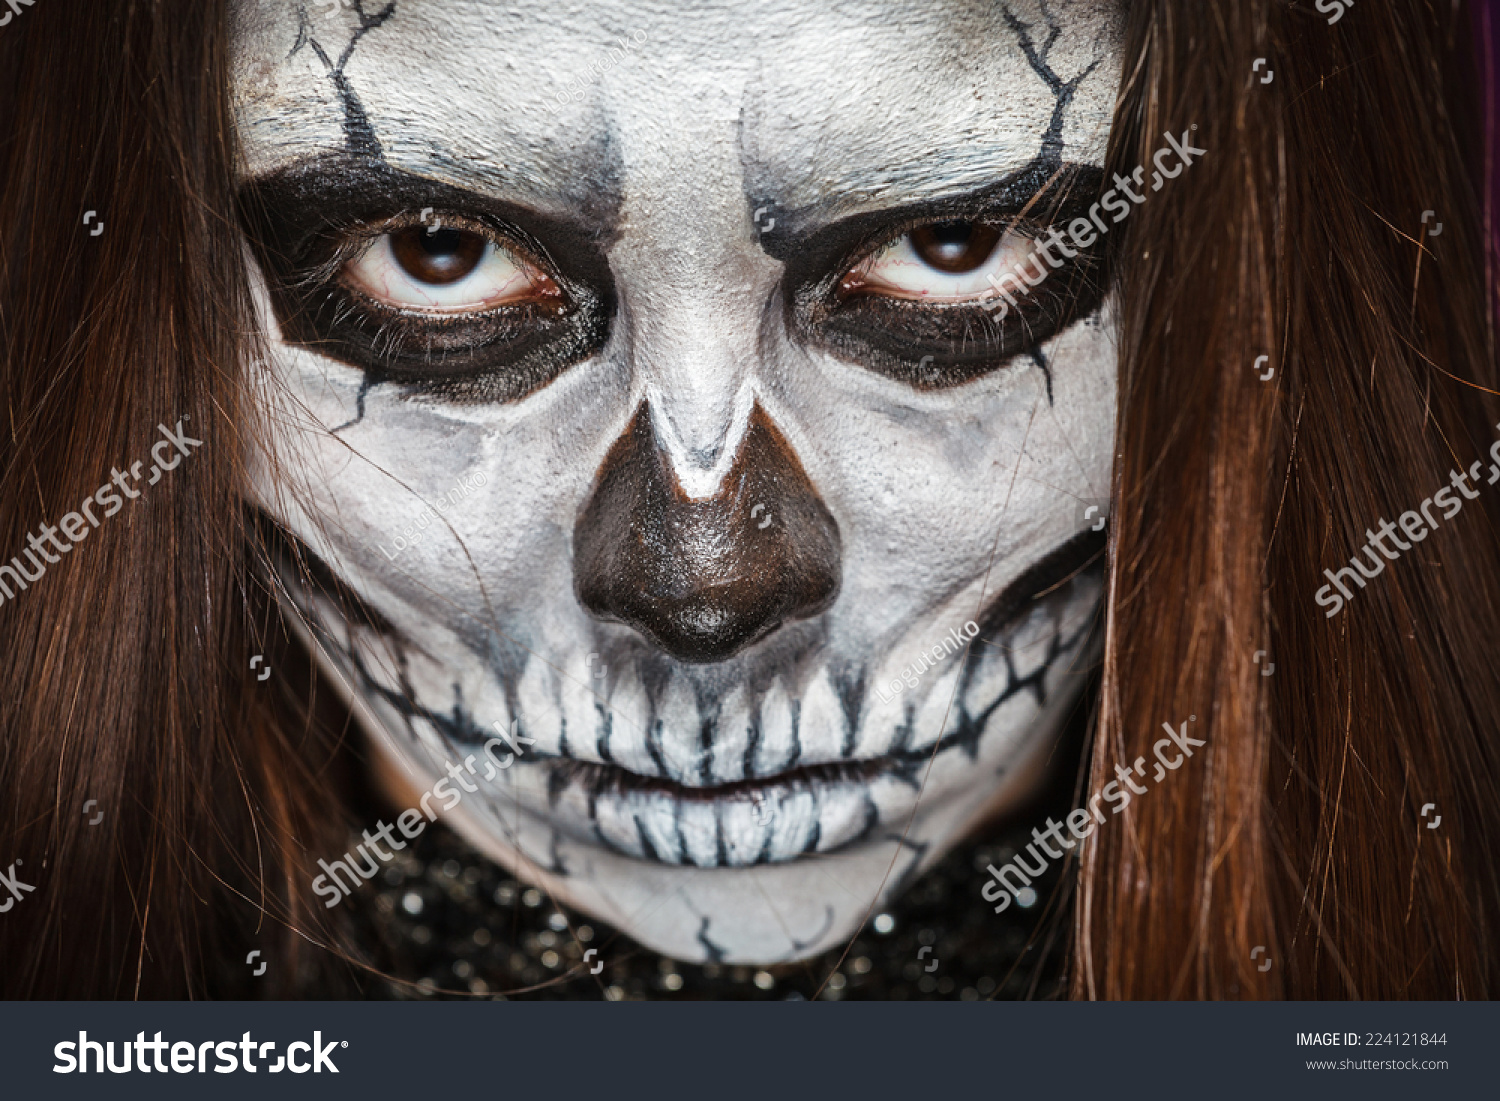 Young Woman Day Dead Mask Skull Stock Photo 224121844 - Shutterstock